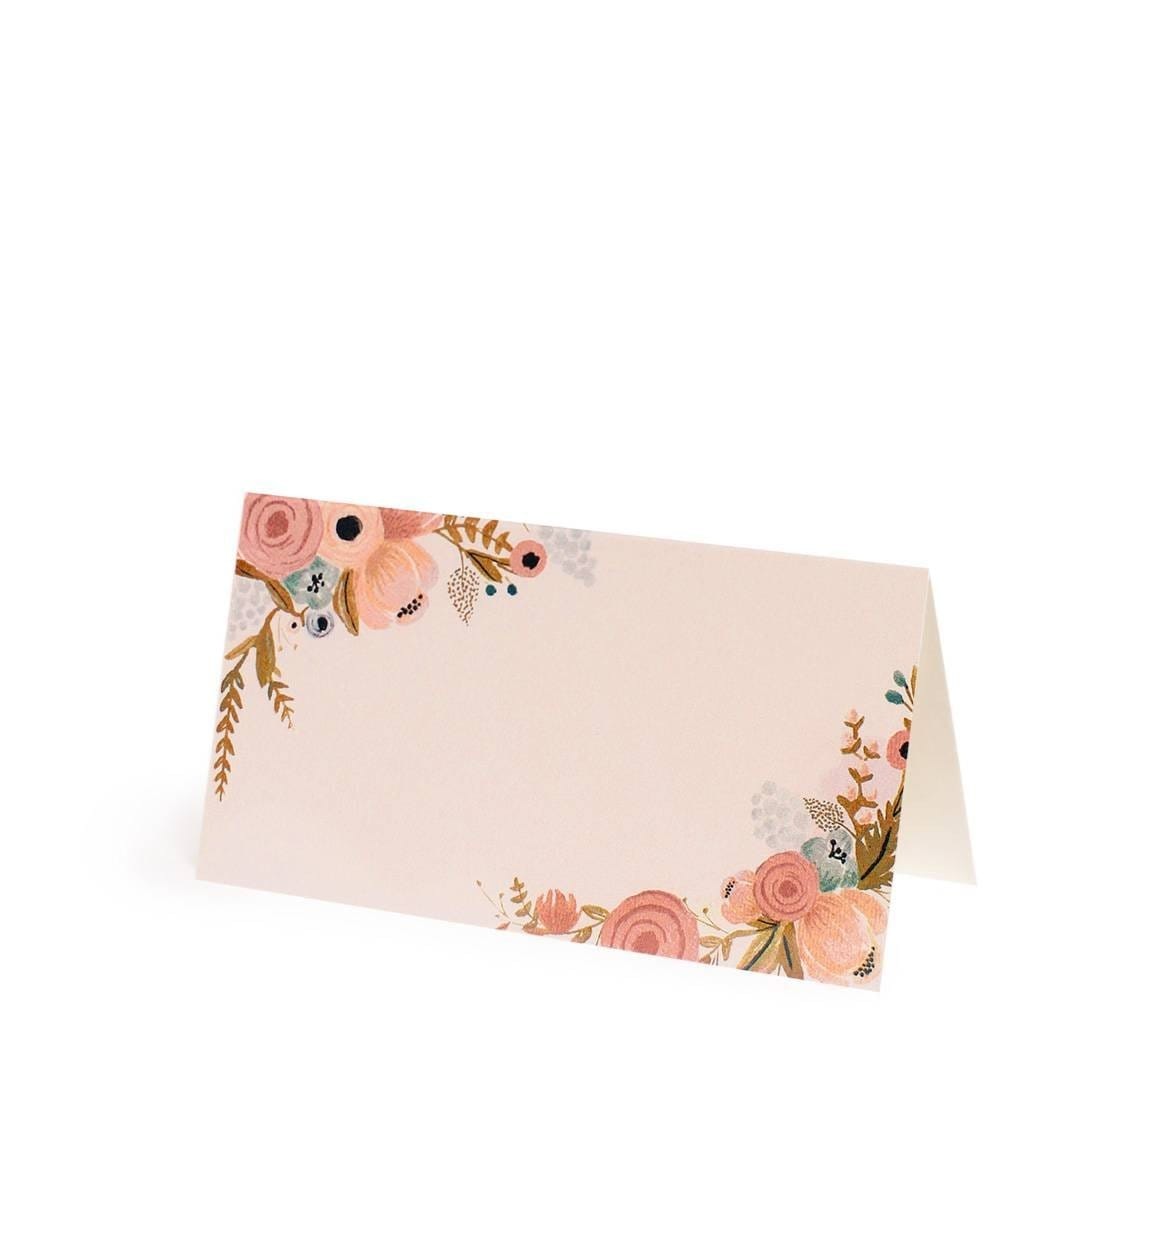 SIMONE Place Cards by Rifle Paper Co. Rifle Paper Co Cards